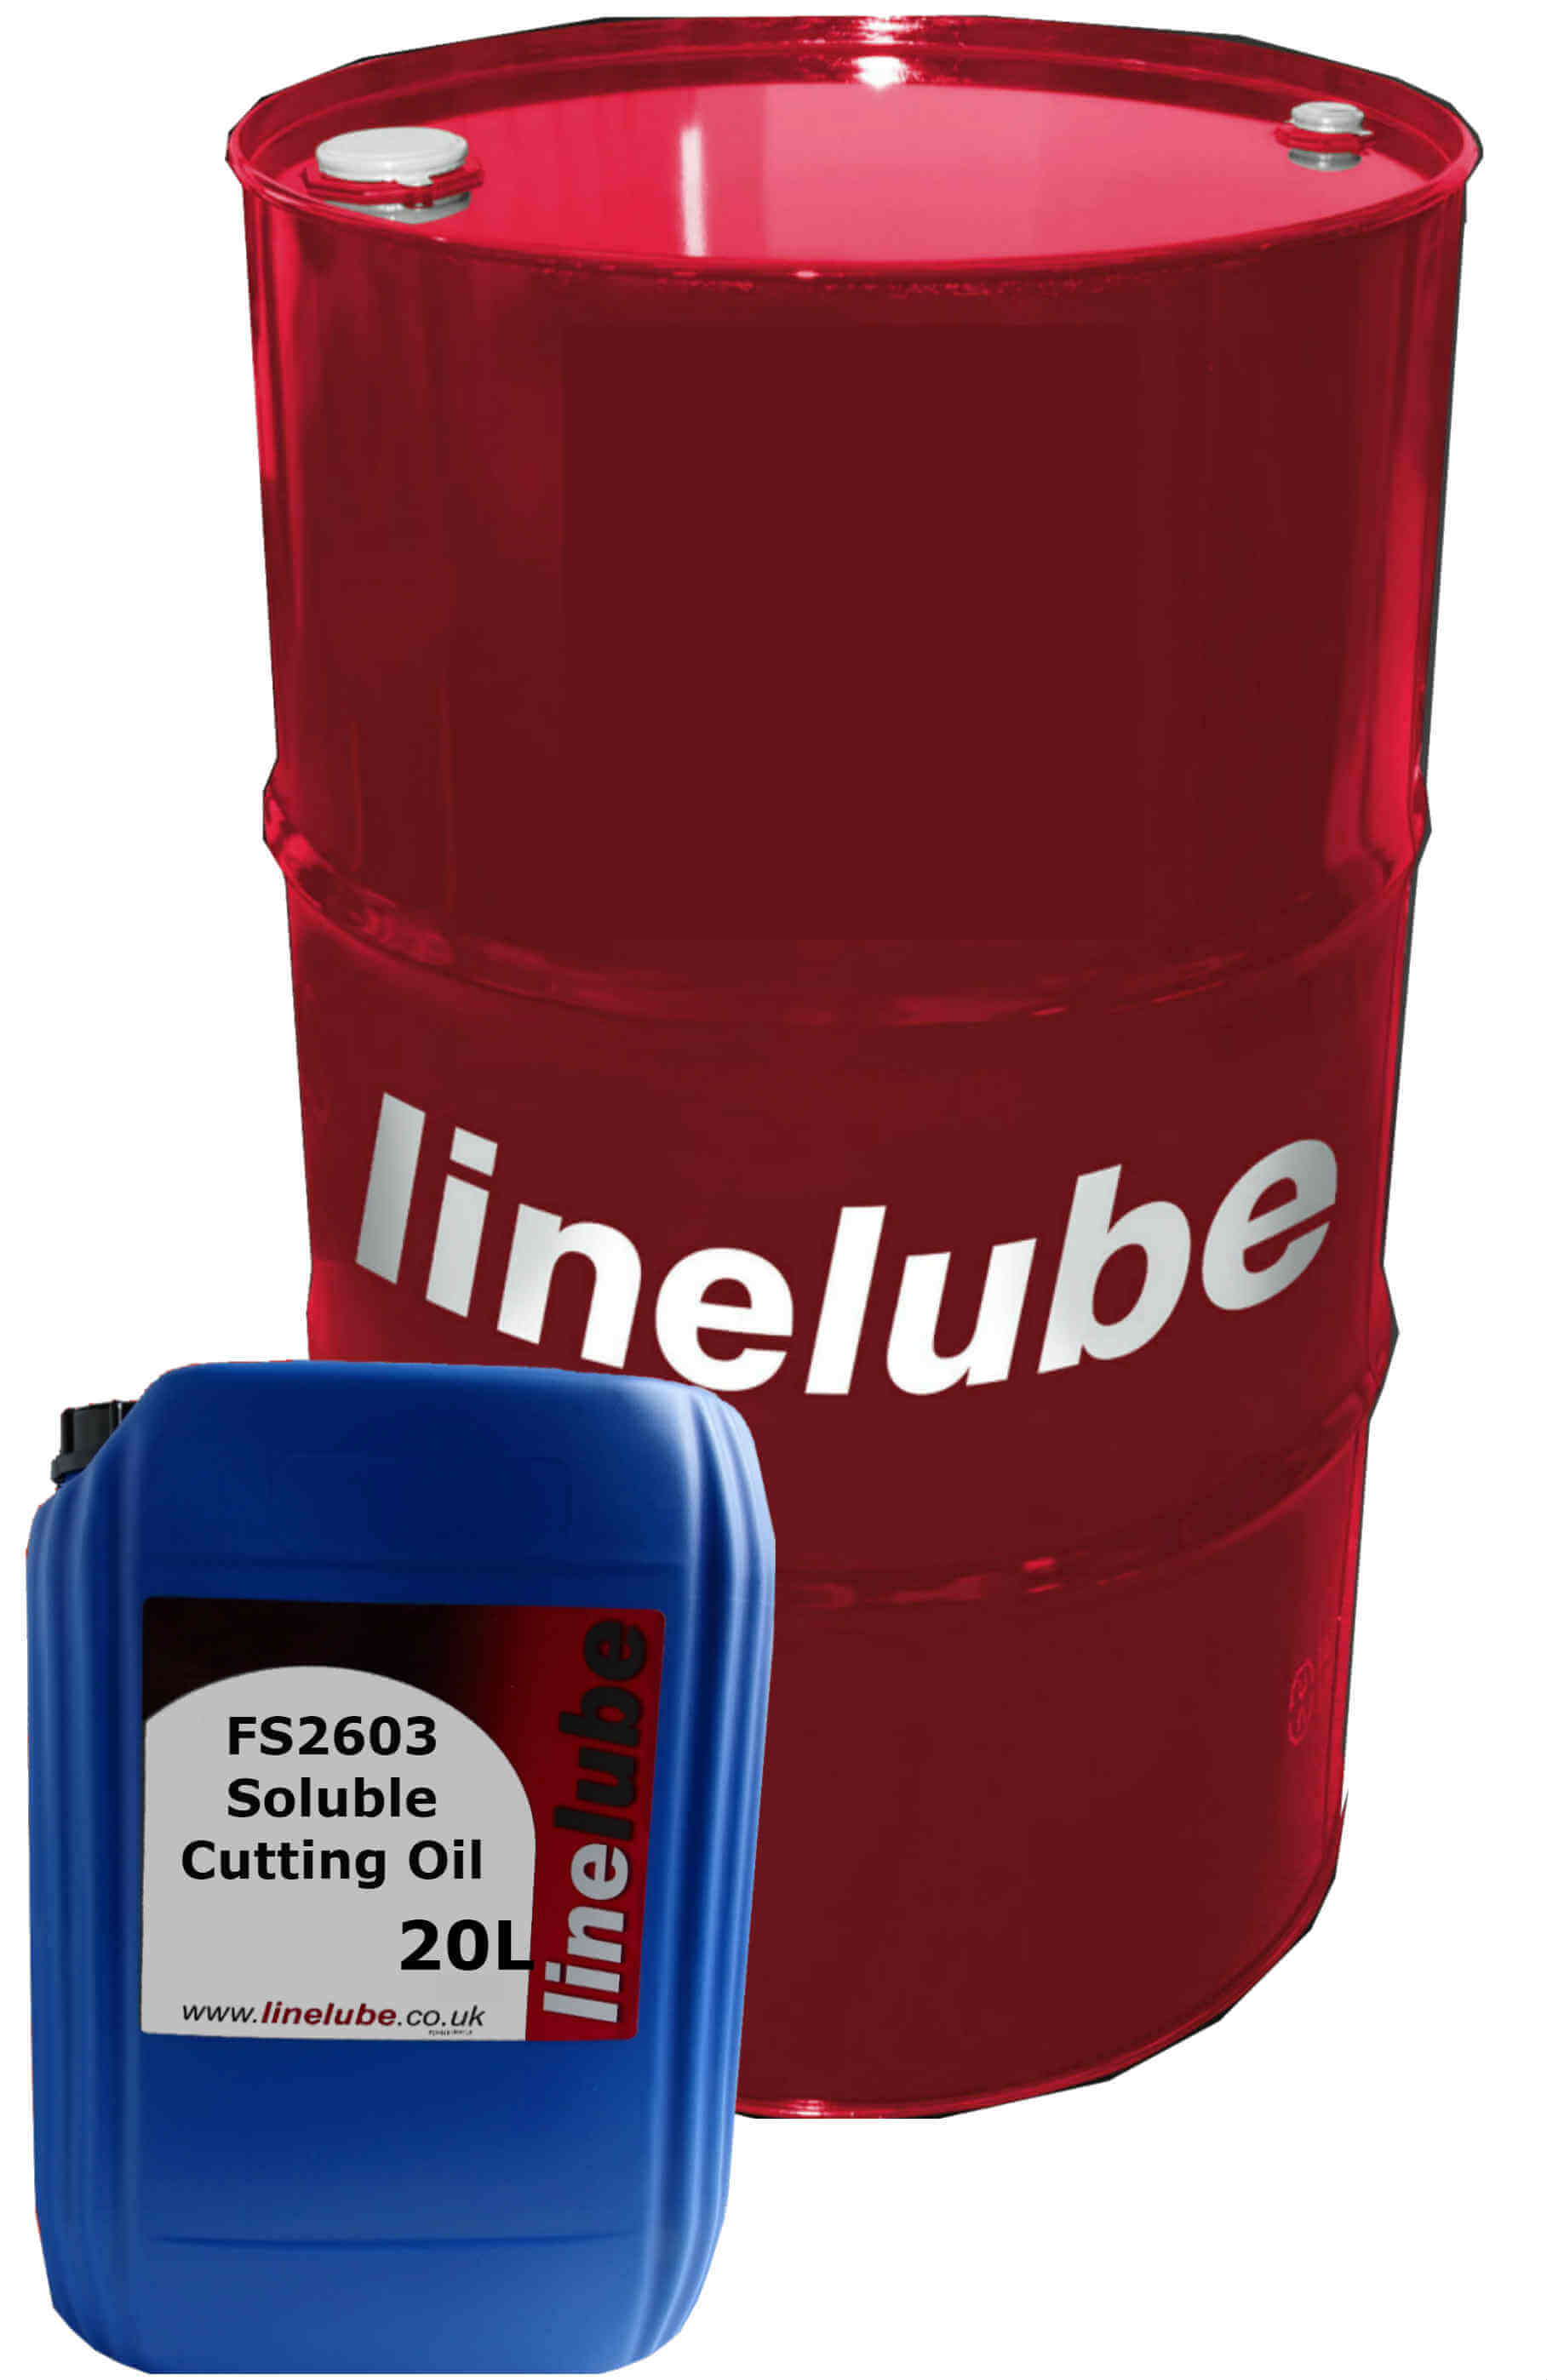 linelube FS2603 Soluble Cutting Oil